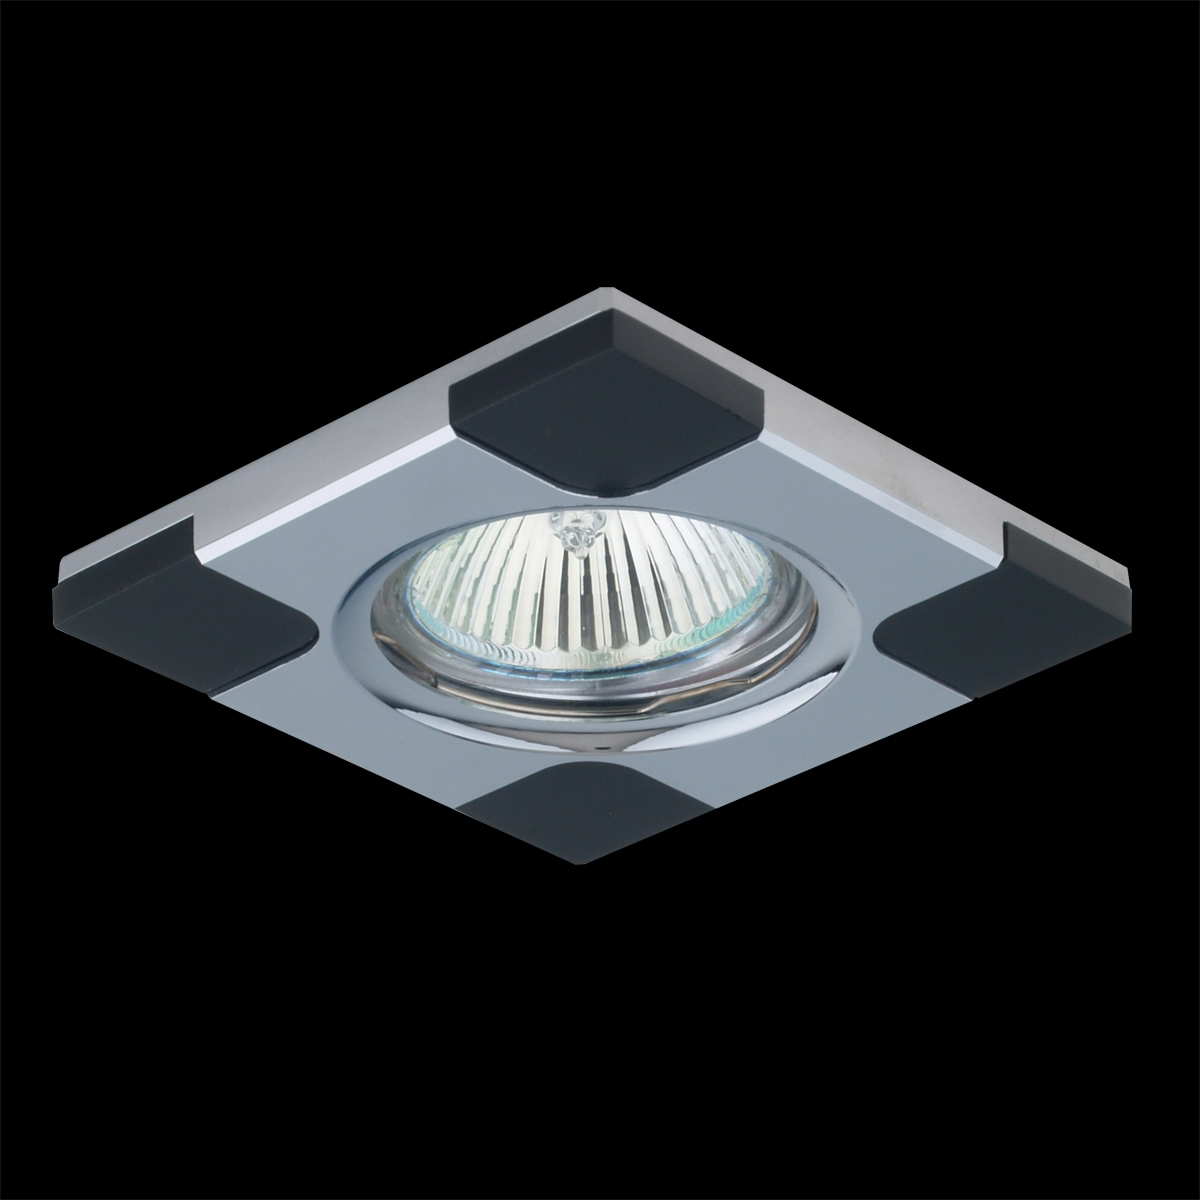 Downlight venge/chróm 71031